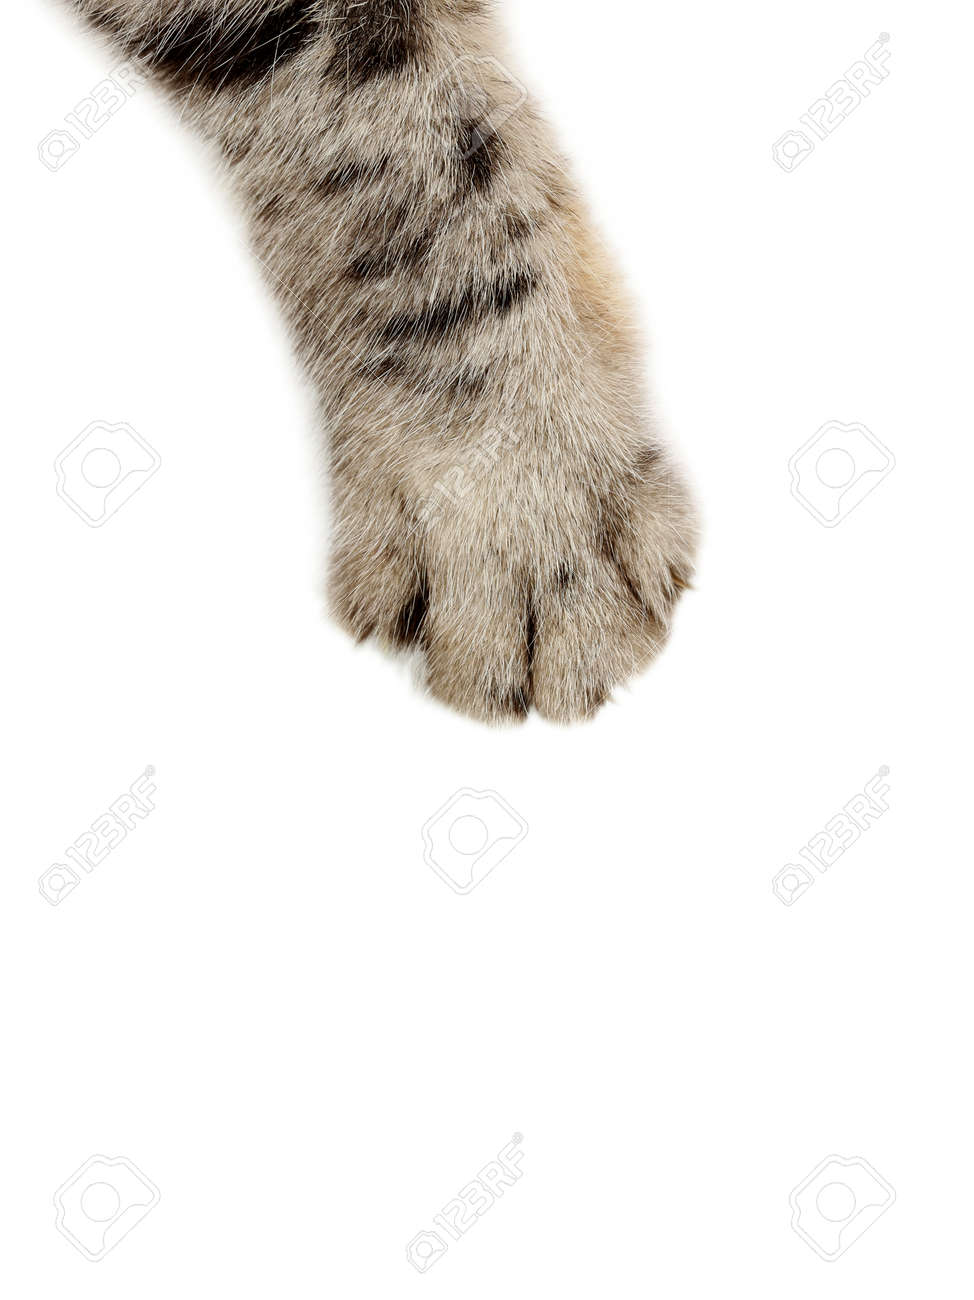 Cat paw on the white background - 55343019